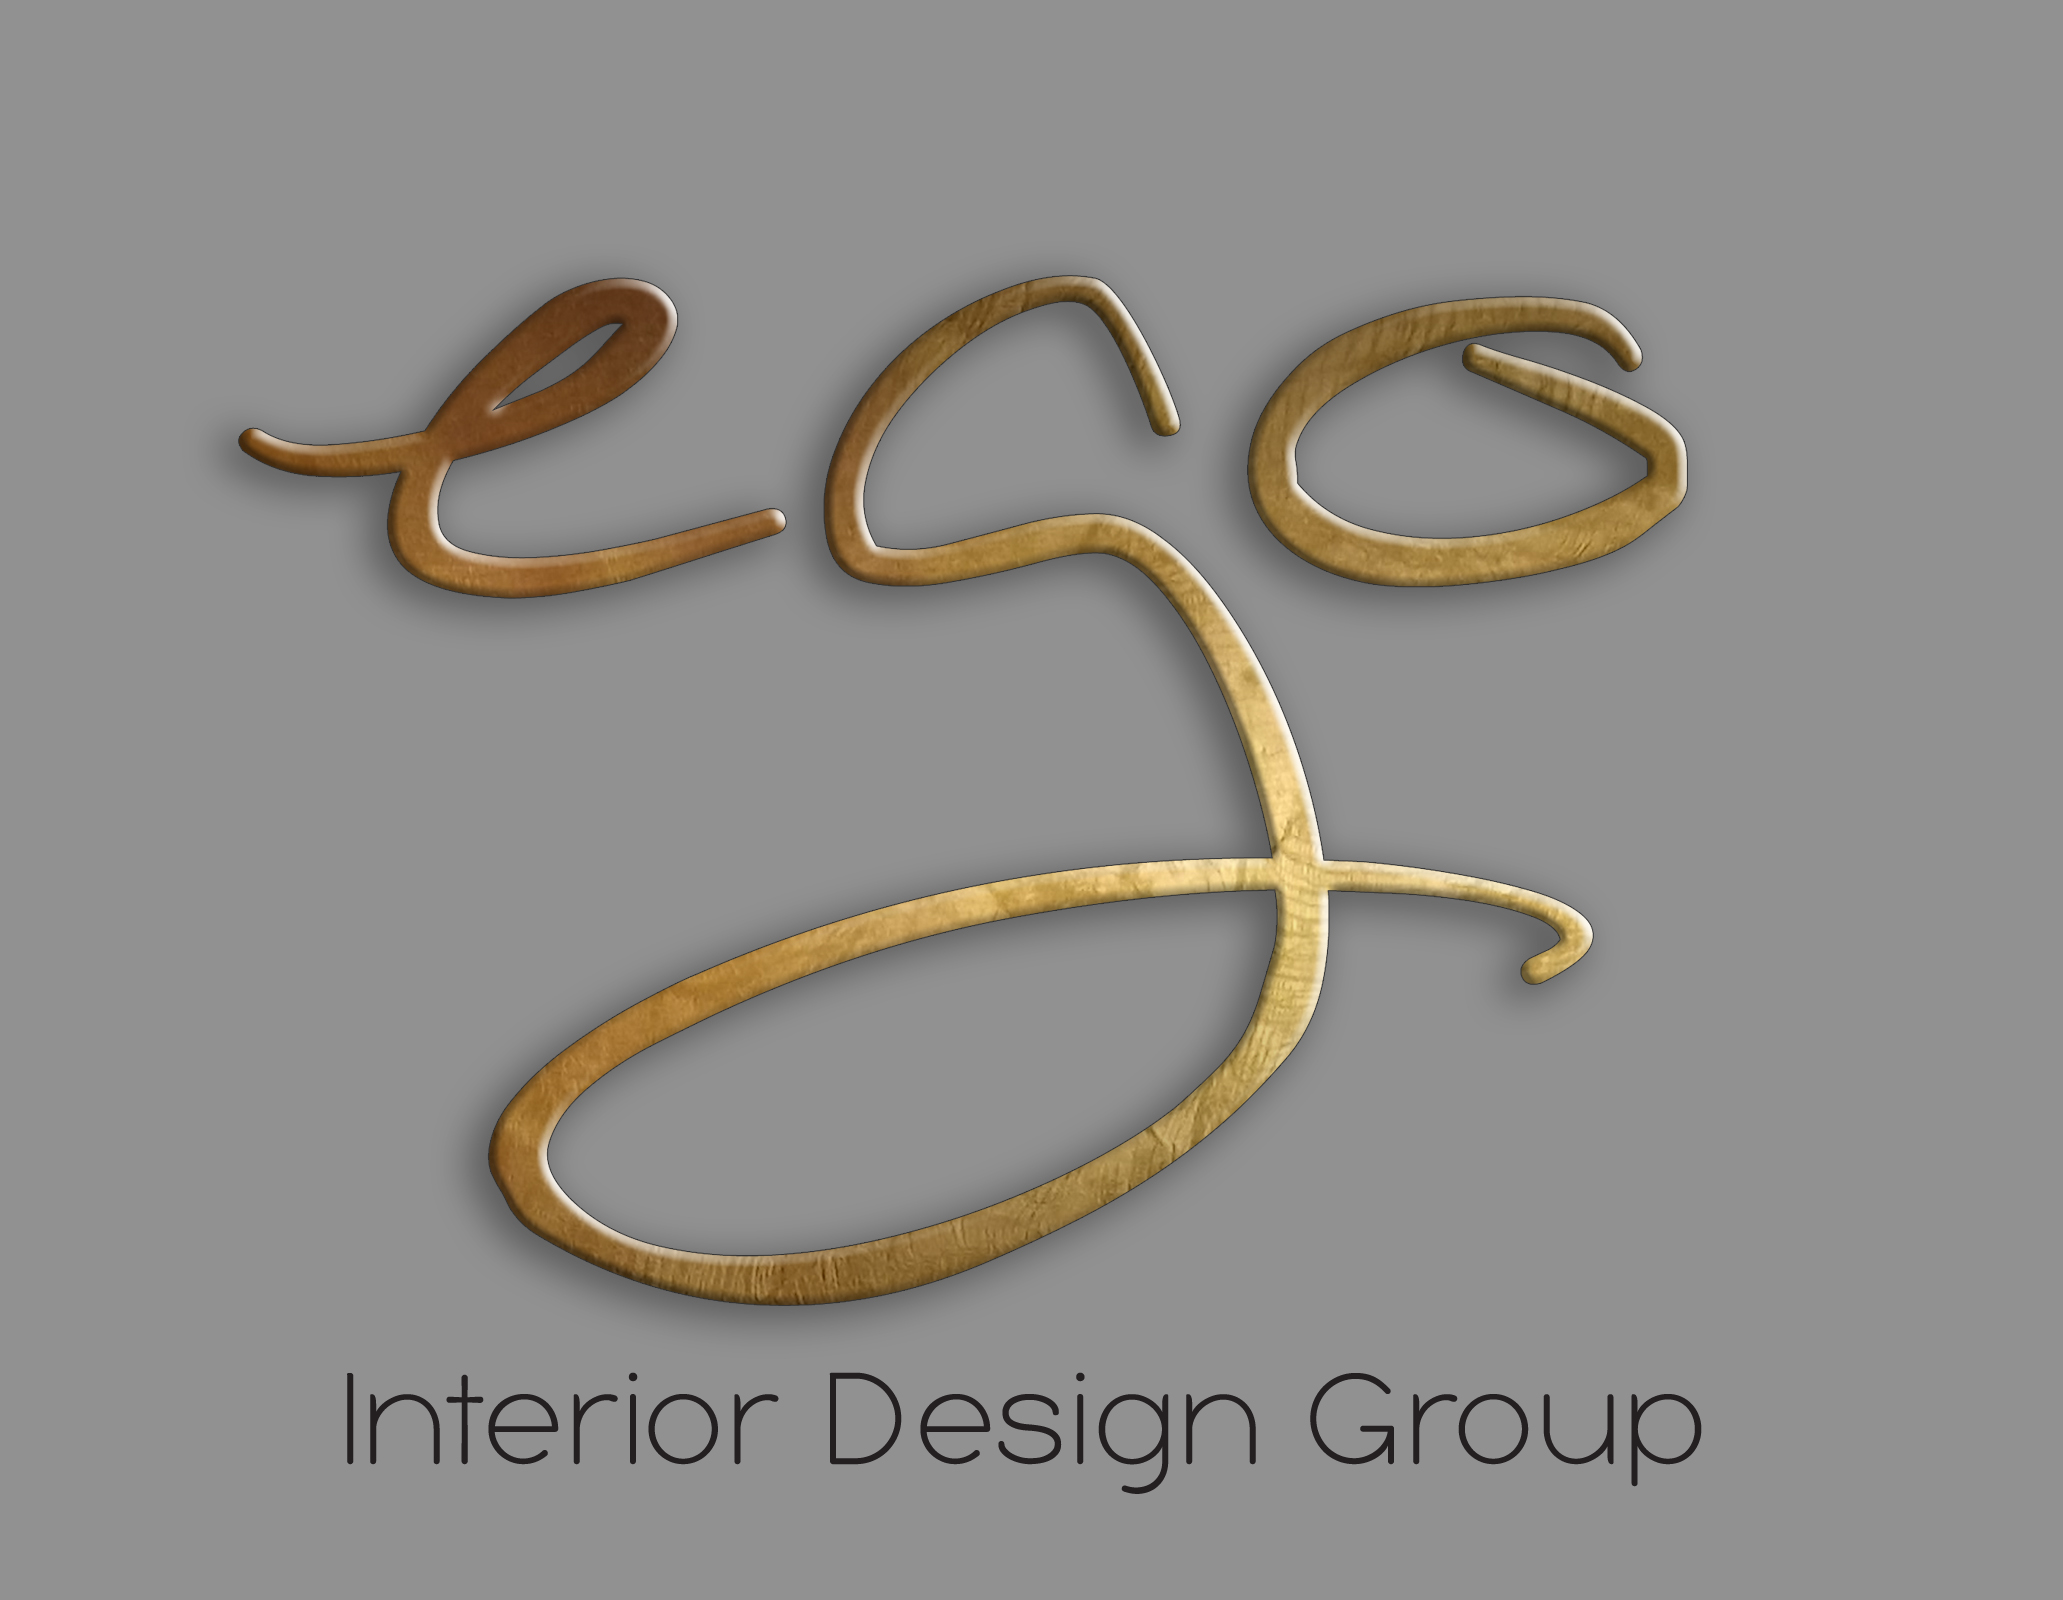 ego Interior Design Group Logo